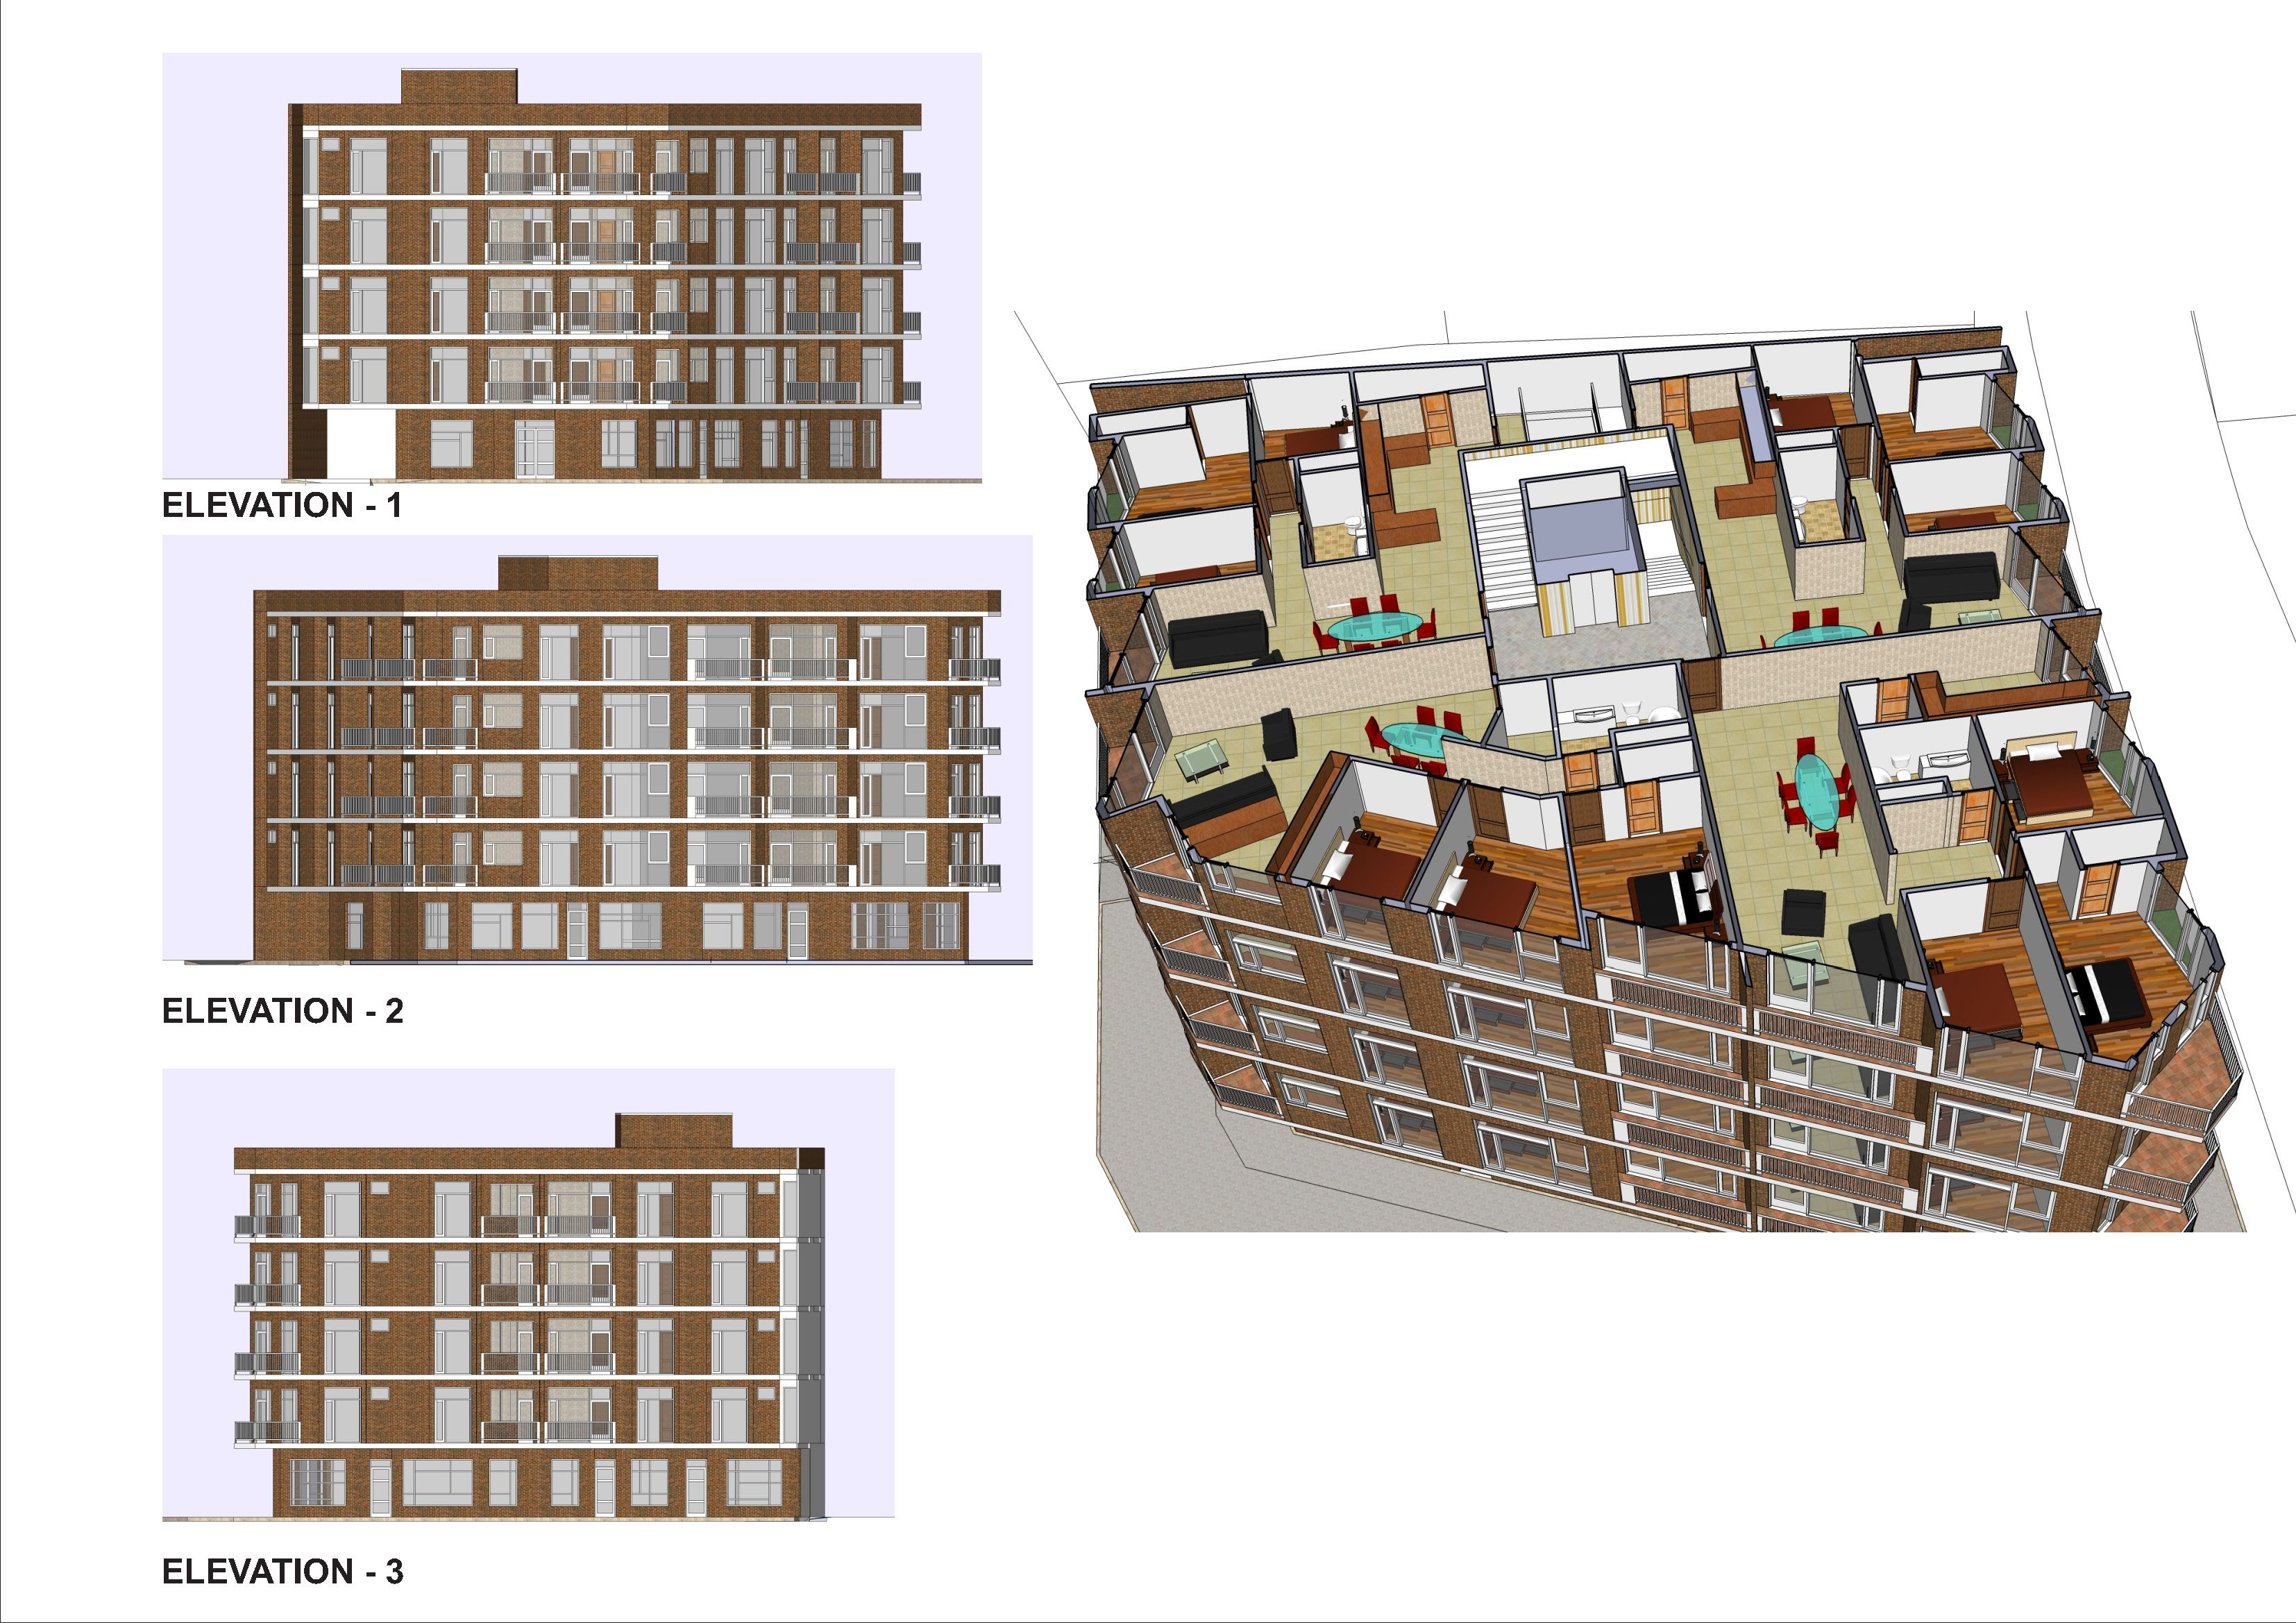 Apartment Building Elevation apartment building plans | location: aksaray, turkey new